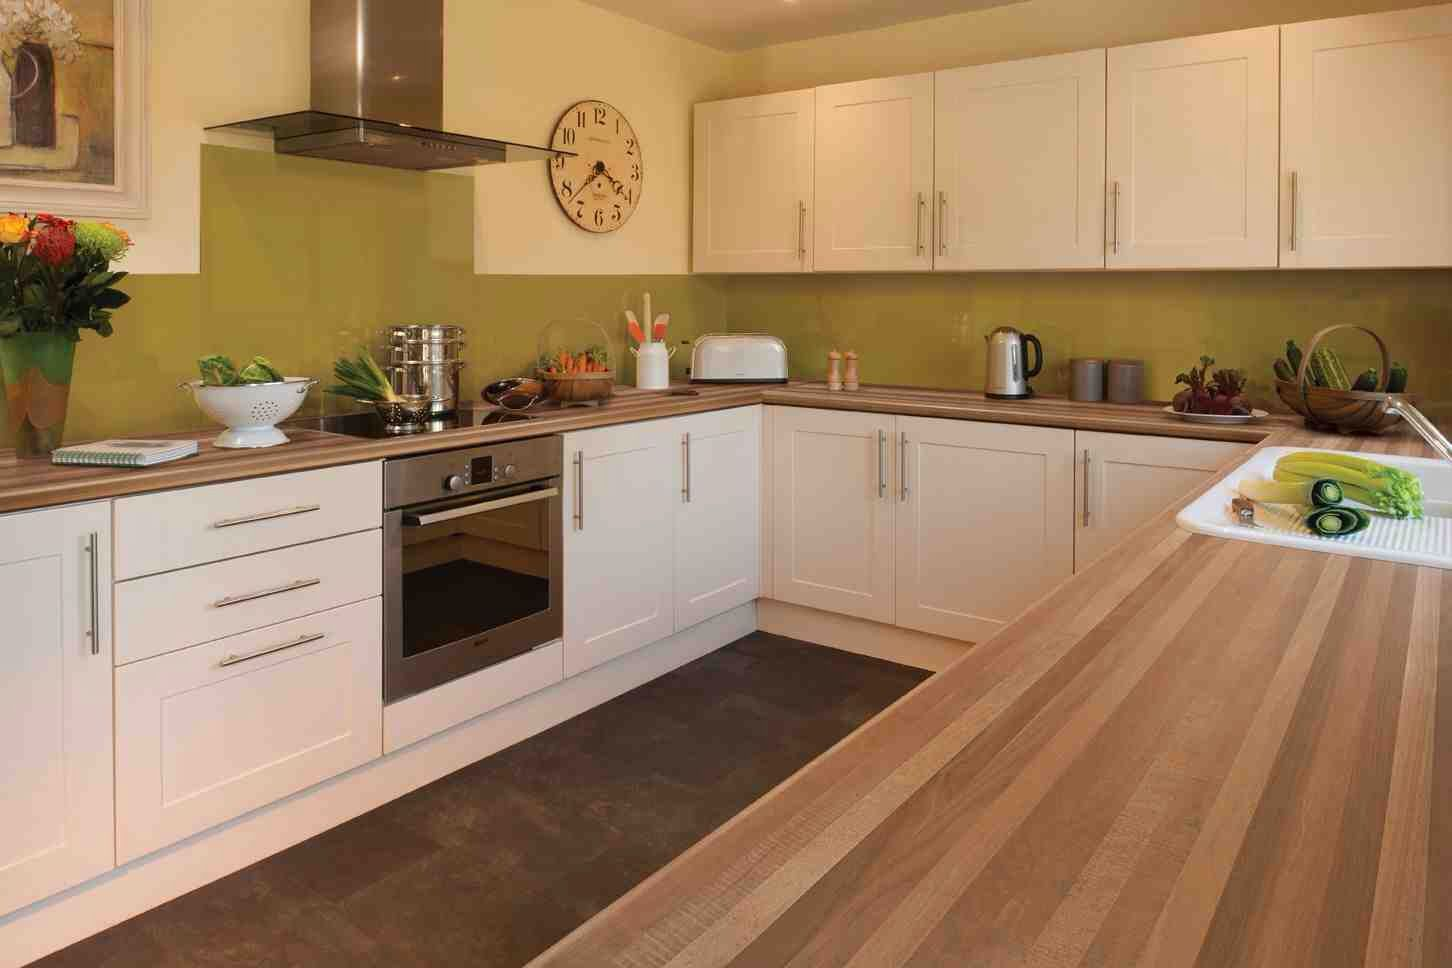 Kitchen design walnut worktop shaker cream gloss ideas for Oak kitchen ideas designs